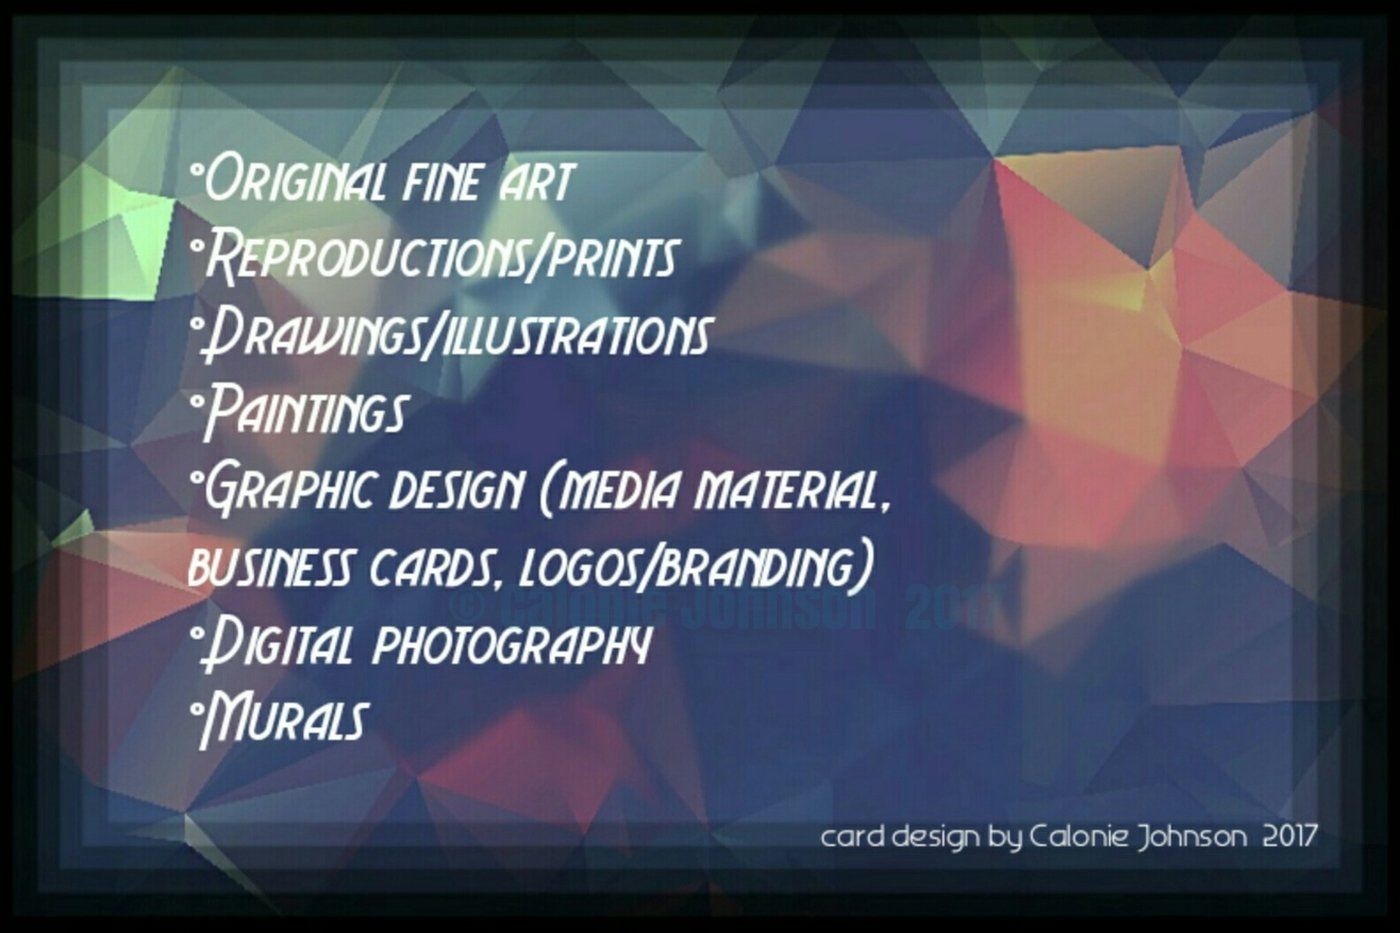 Graphic design business cards by calonie johnson at coroflot actual business card for my visual artfine art business with actual contact info and social network links i have uploaded my design to vistaprint and will colourmoves